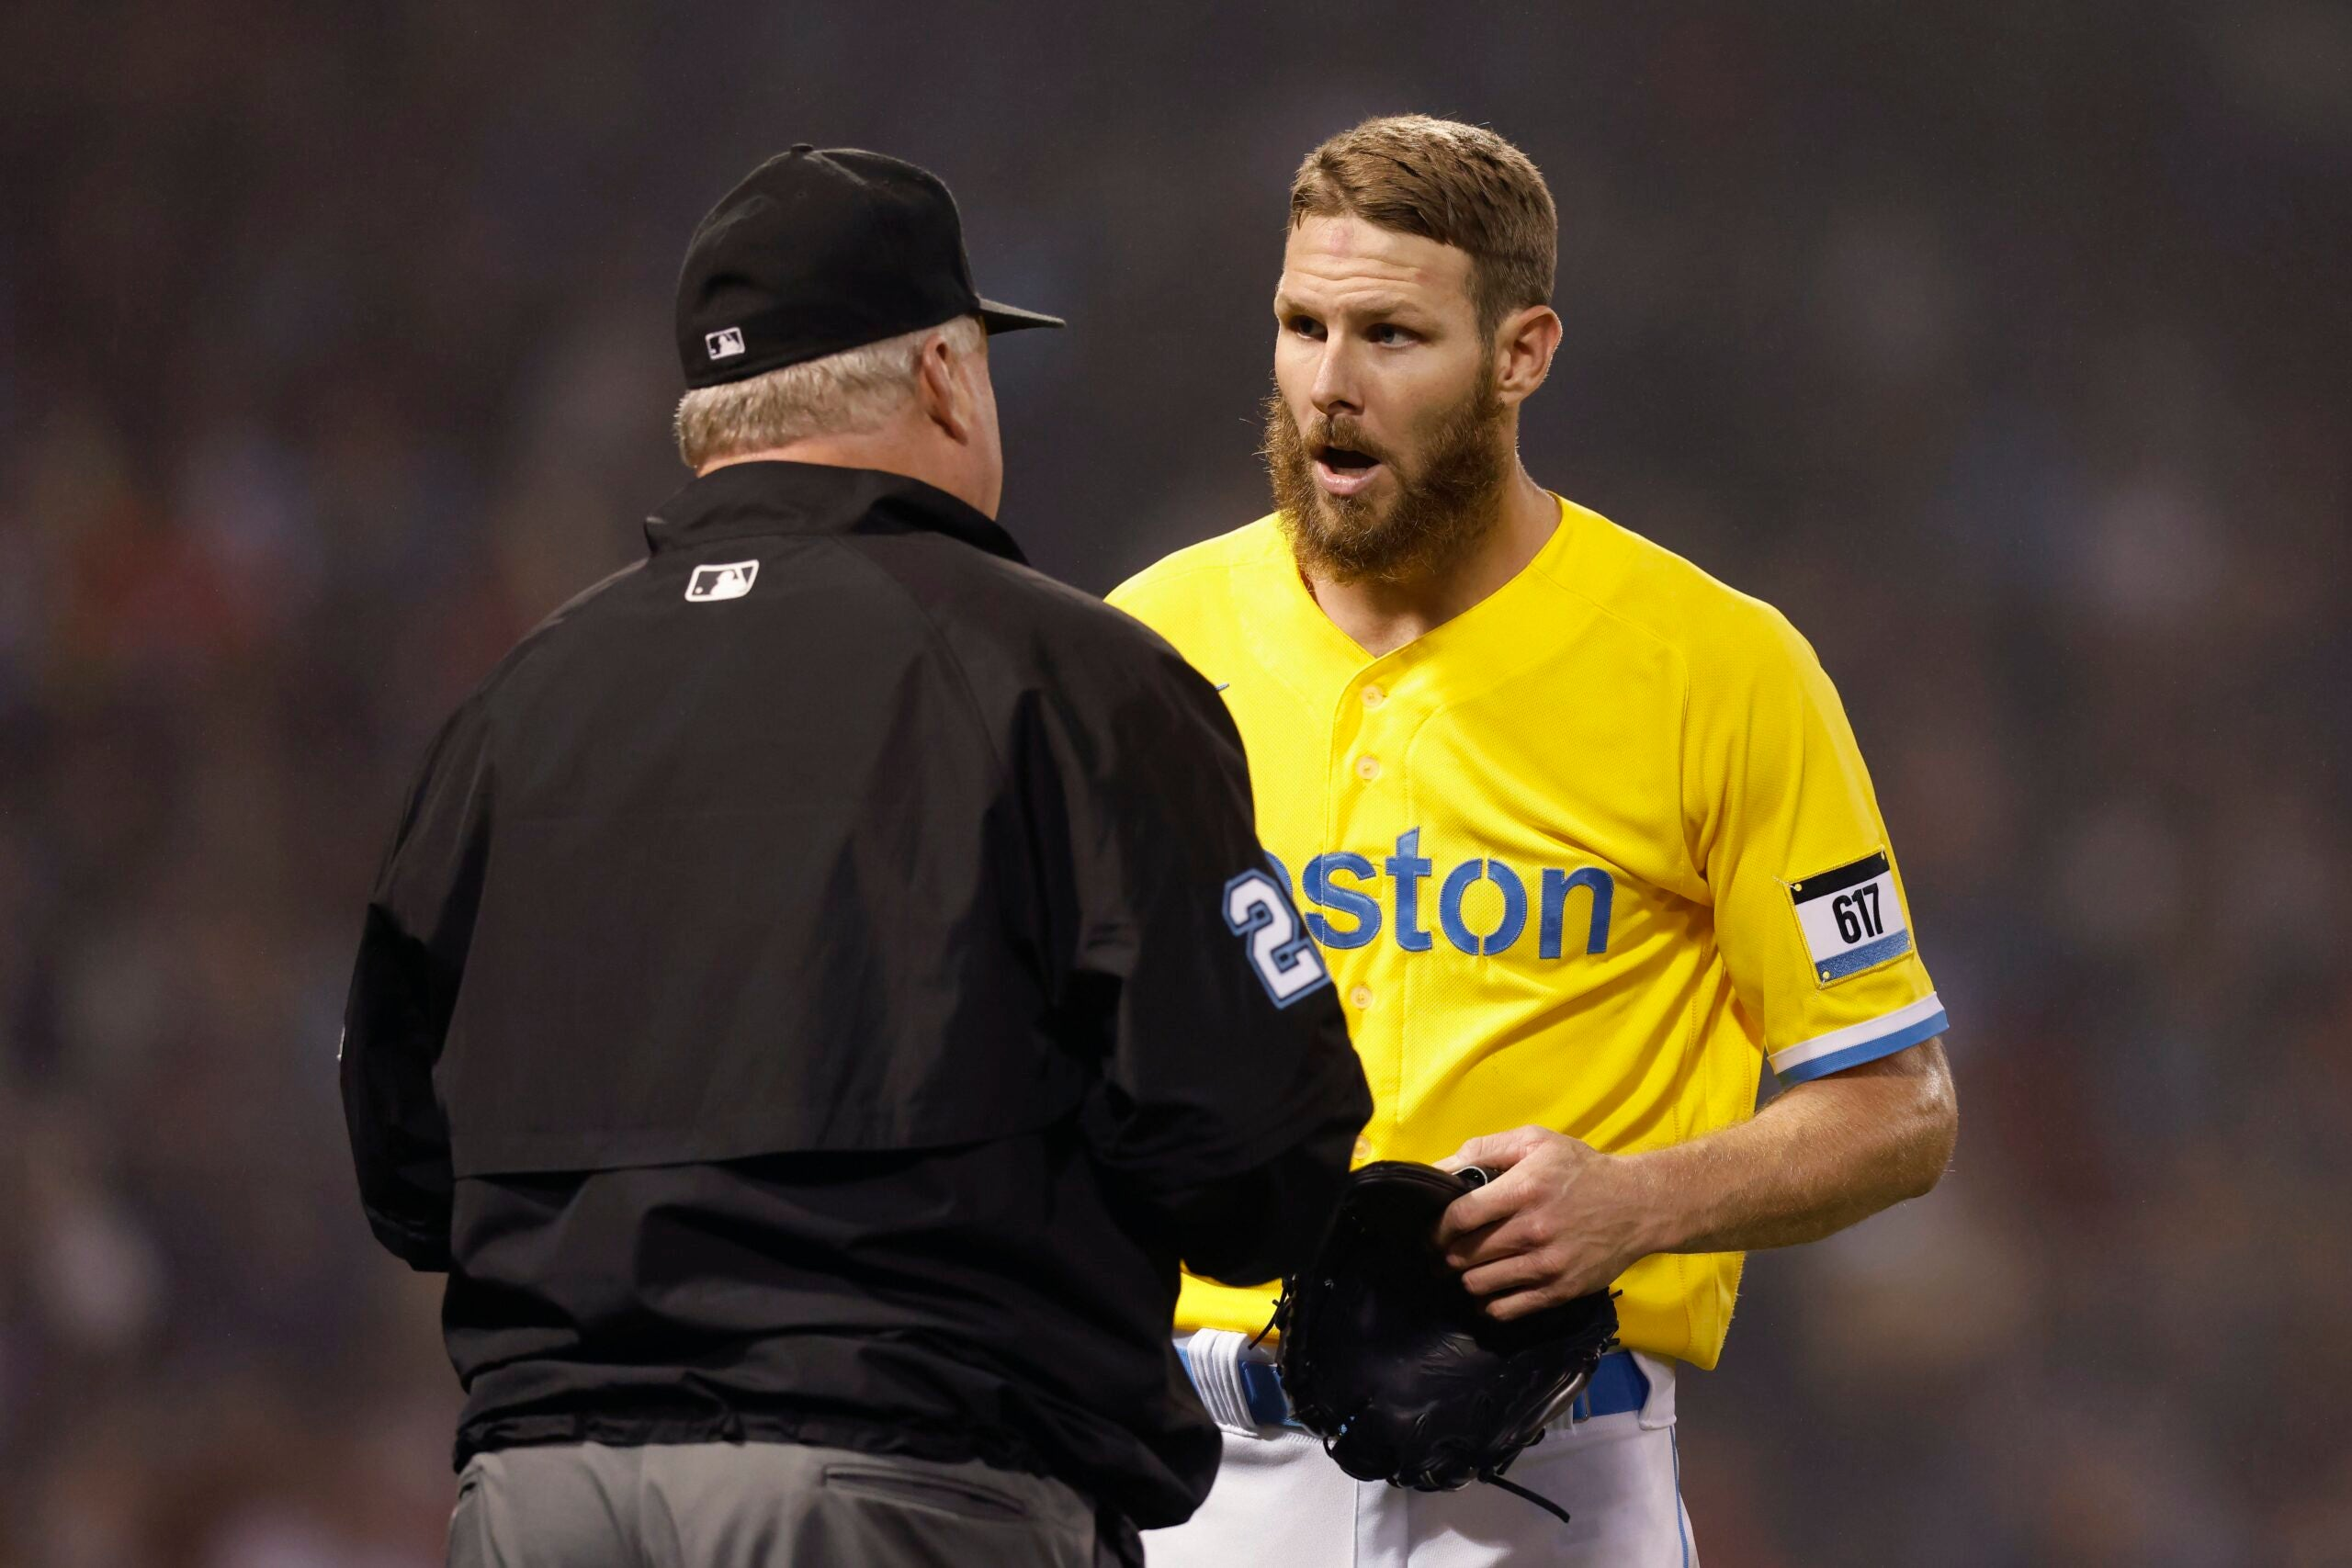 Chris Sale reveals he hasn't been vaccinated against COVID-19 1